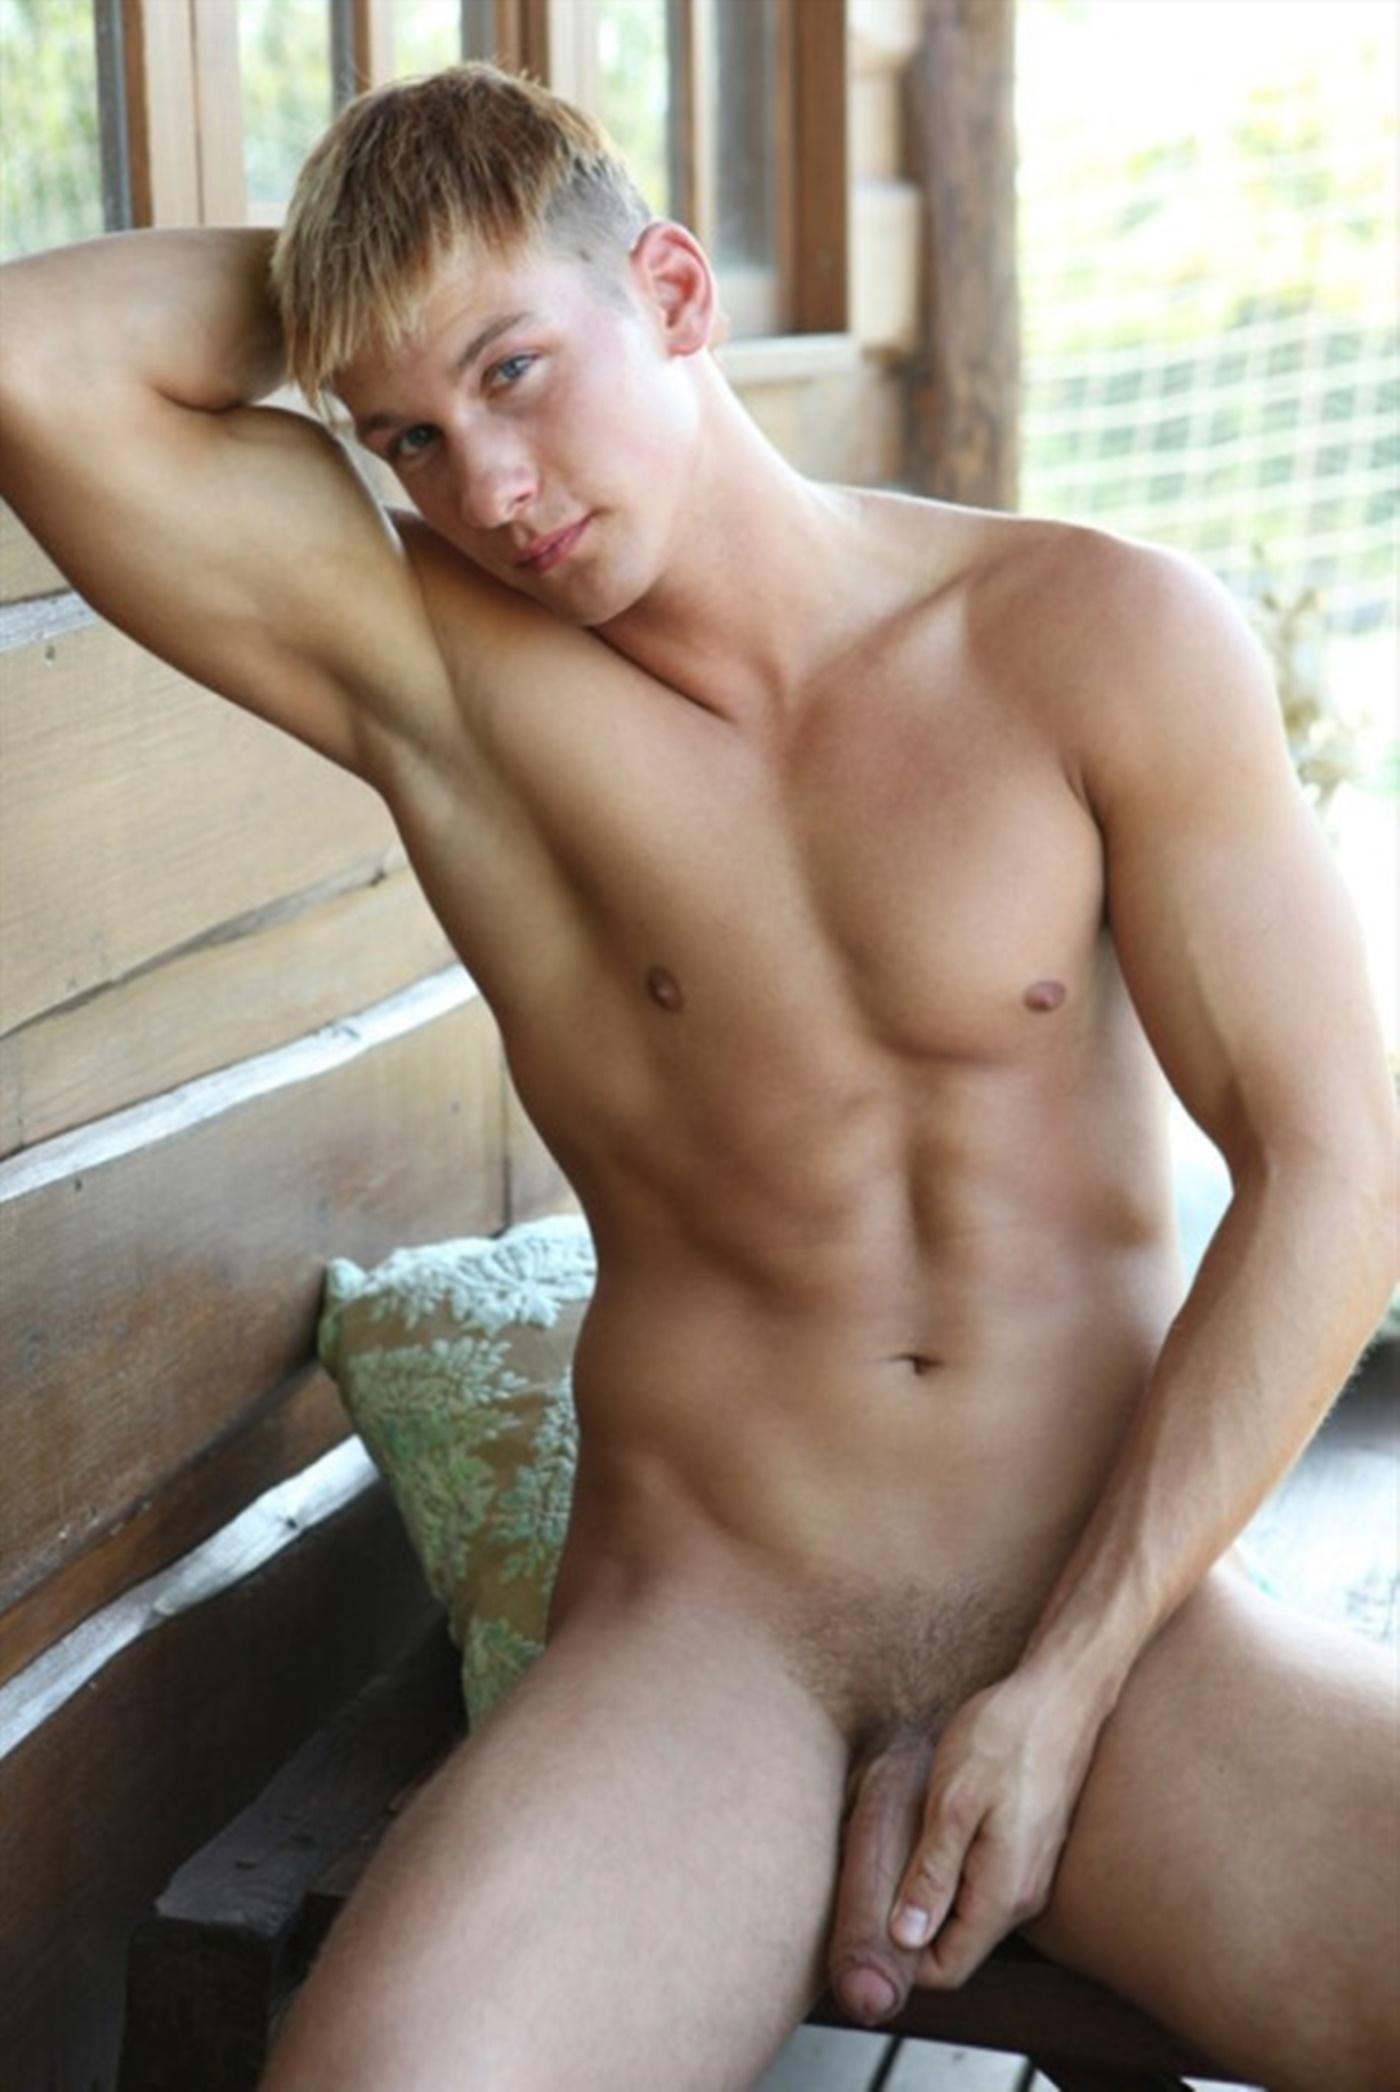 Blonde male models nude — pic 12